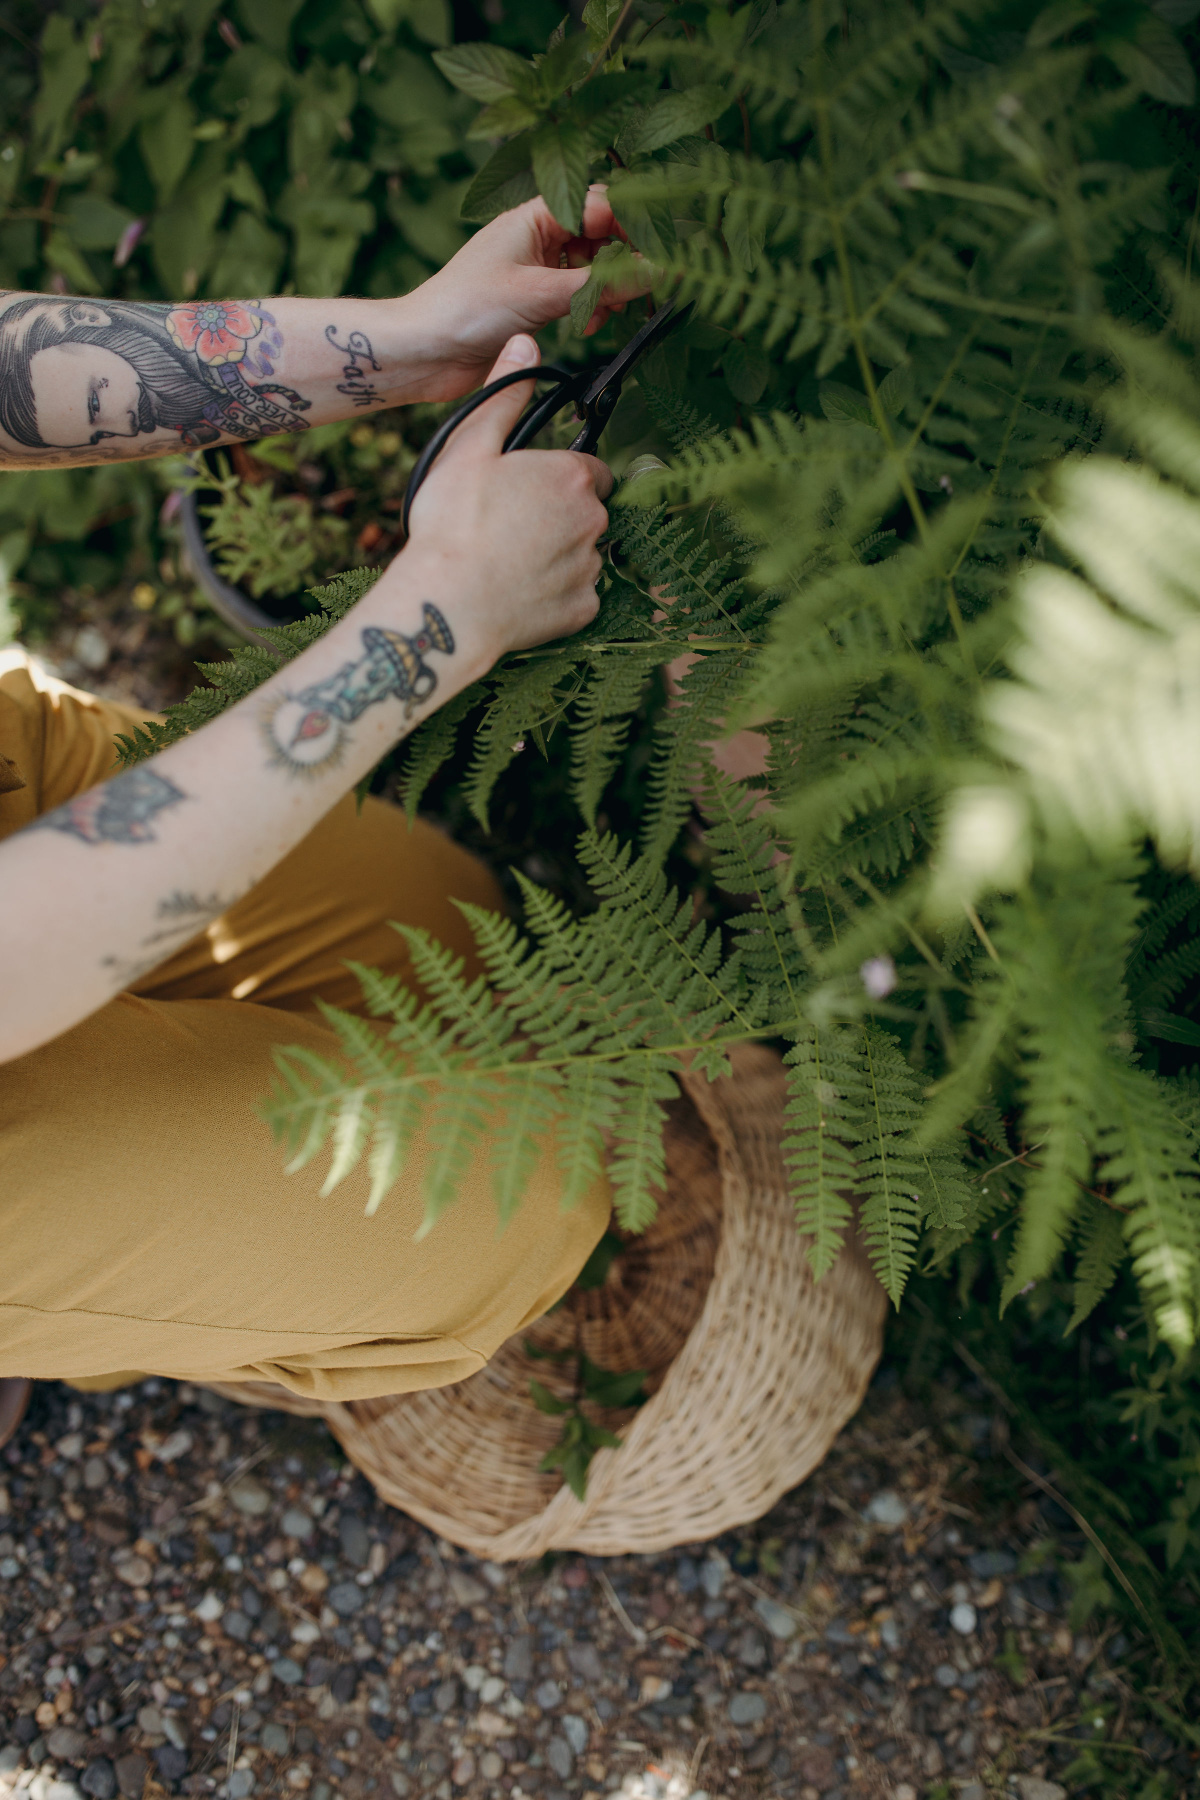 foraging herbs with scissors